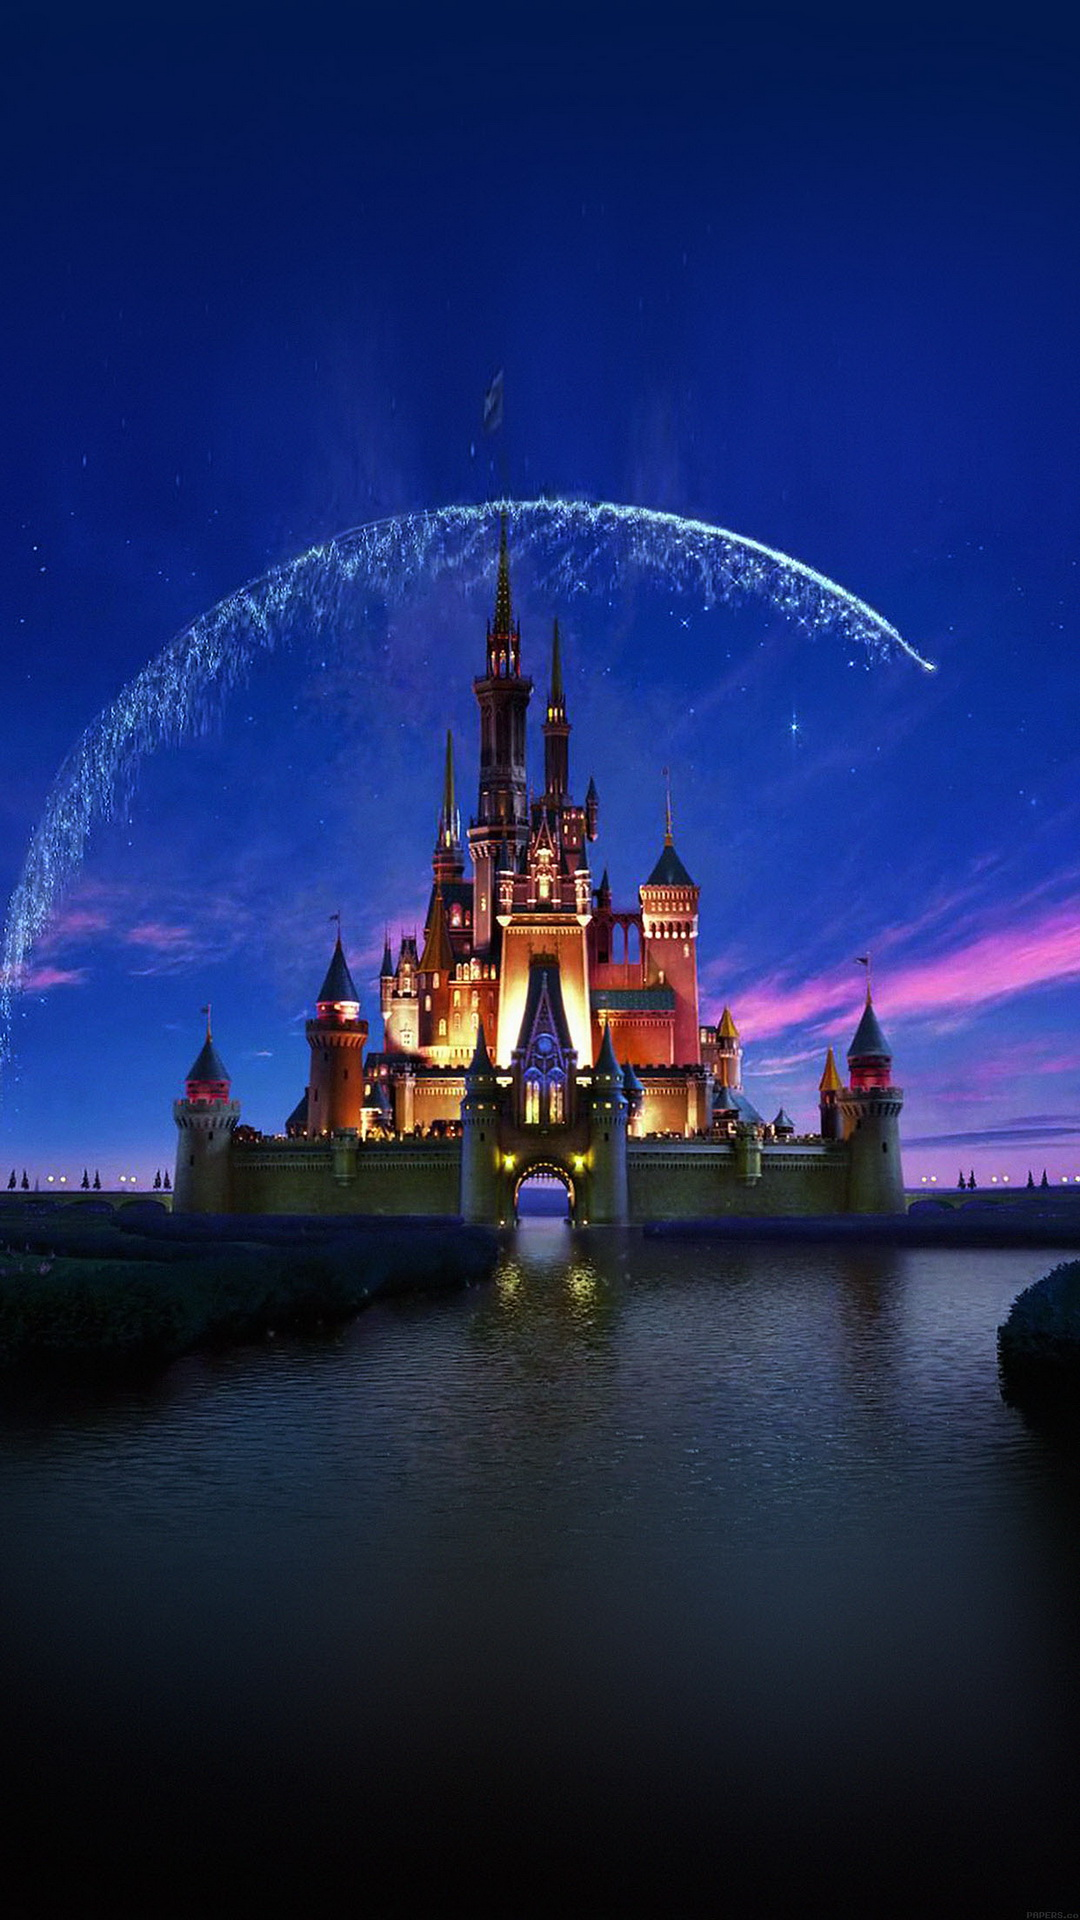 Free Download Disney Castle Top 10 Htc One M9 Wallpapers